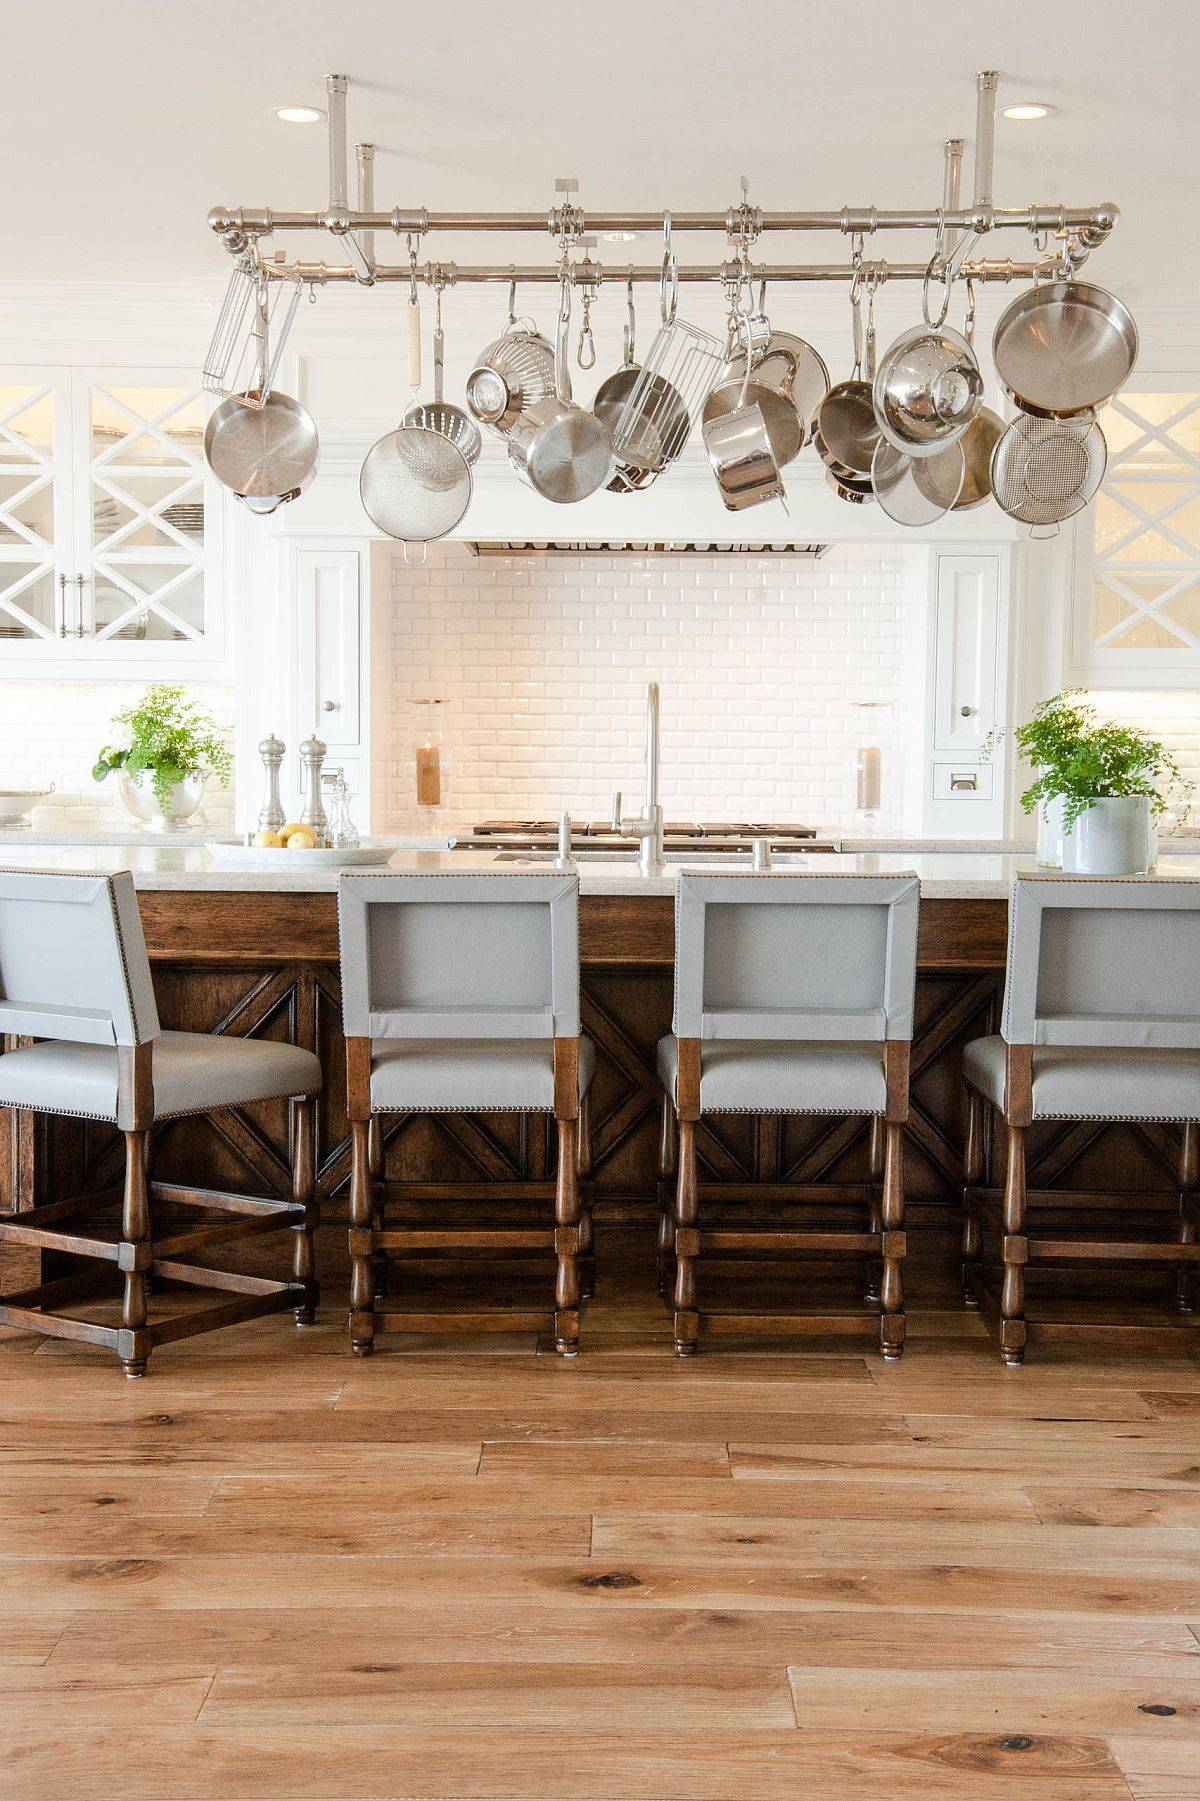 Gorgeous-beach-style-kitchen-with-a-suspended-pot-rack-that-adds-plenty-of-sparkle-49743